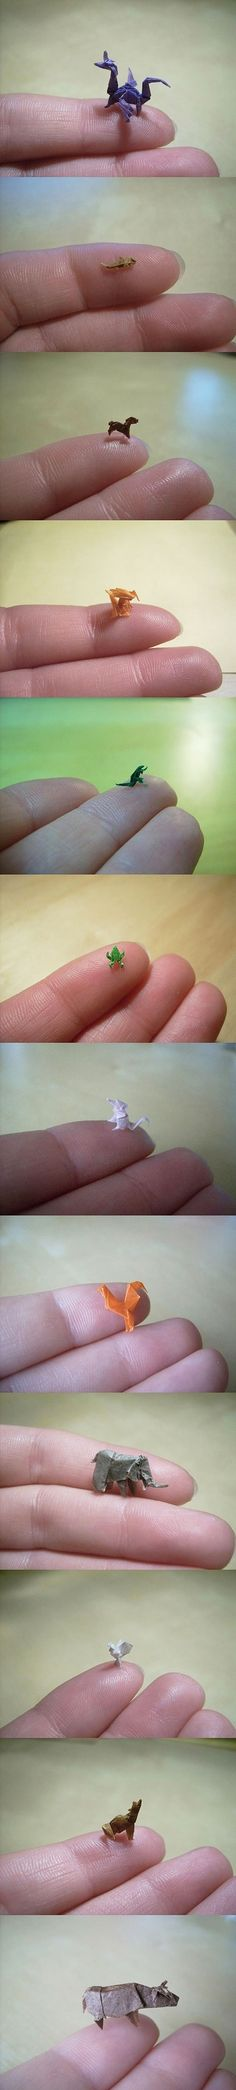 Miniature Origami, i used to do fun things like that. :)